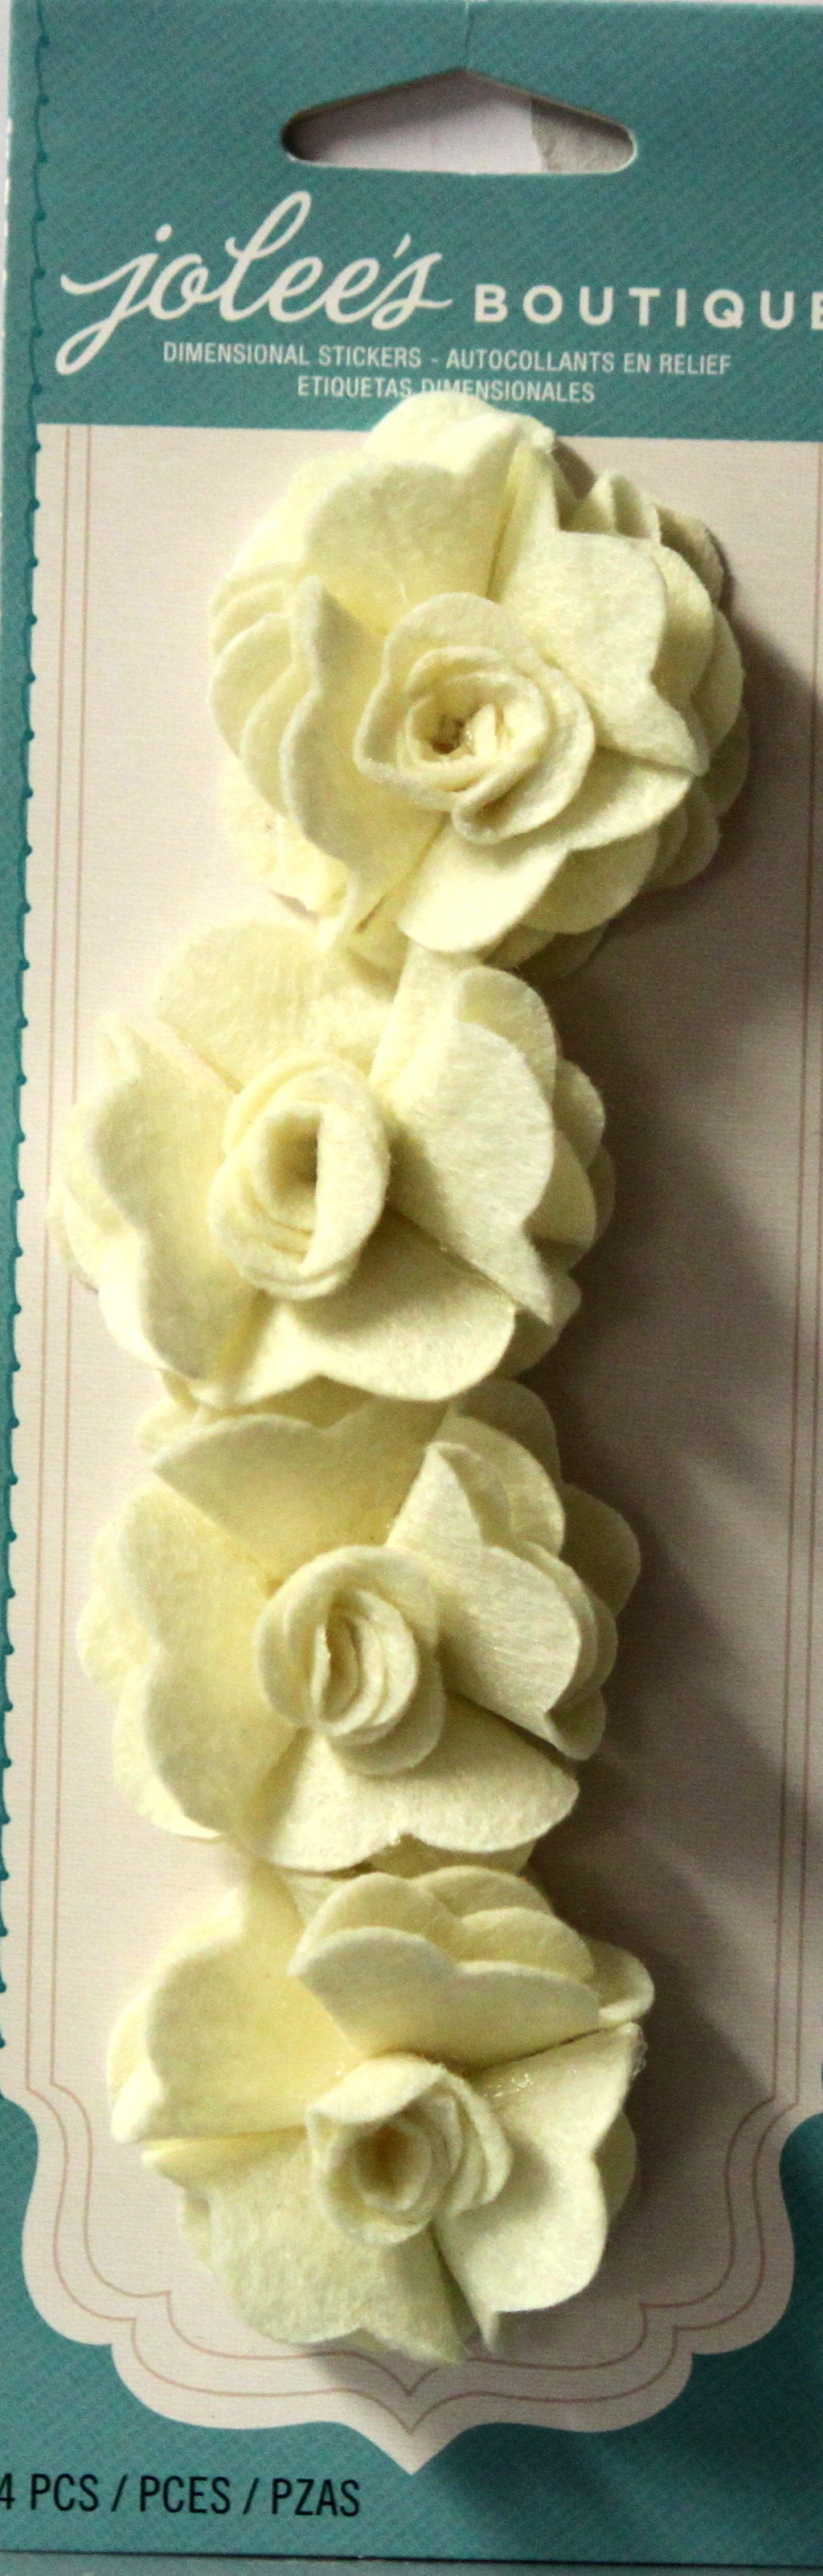 Jolee's Boutique Cream Felt Rose Dimensional Stickers